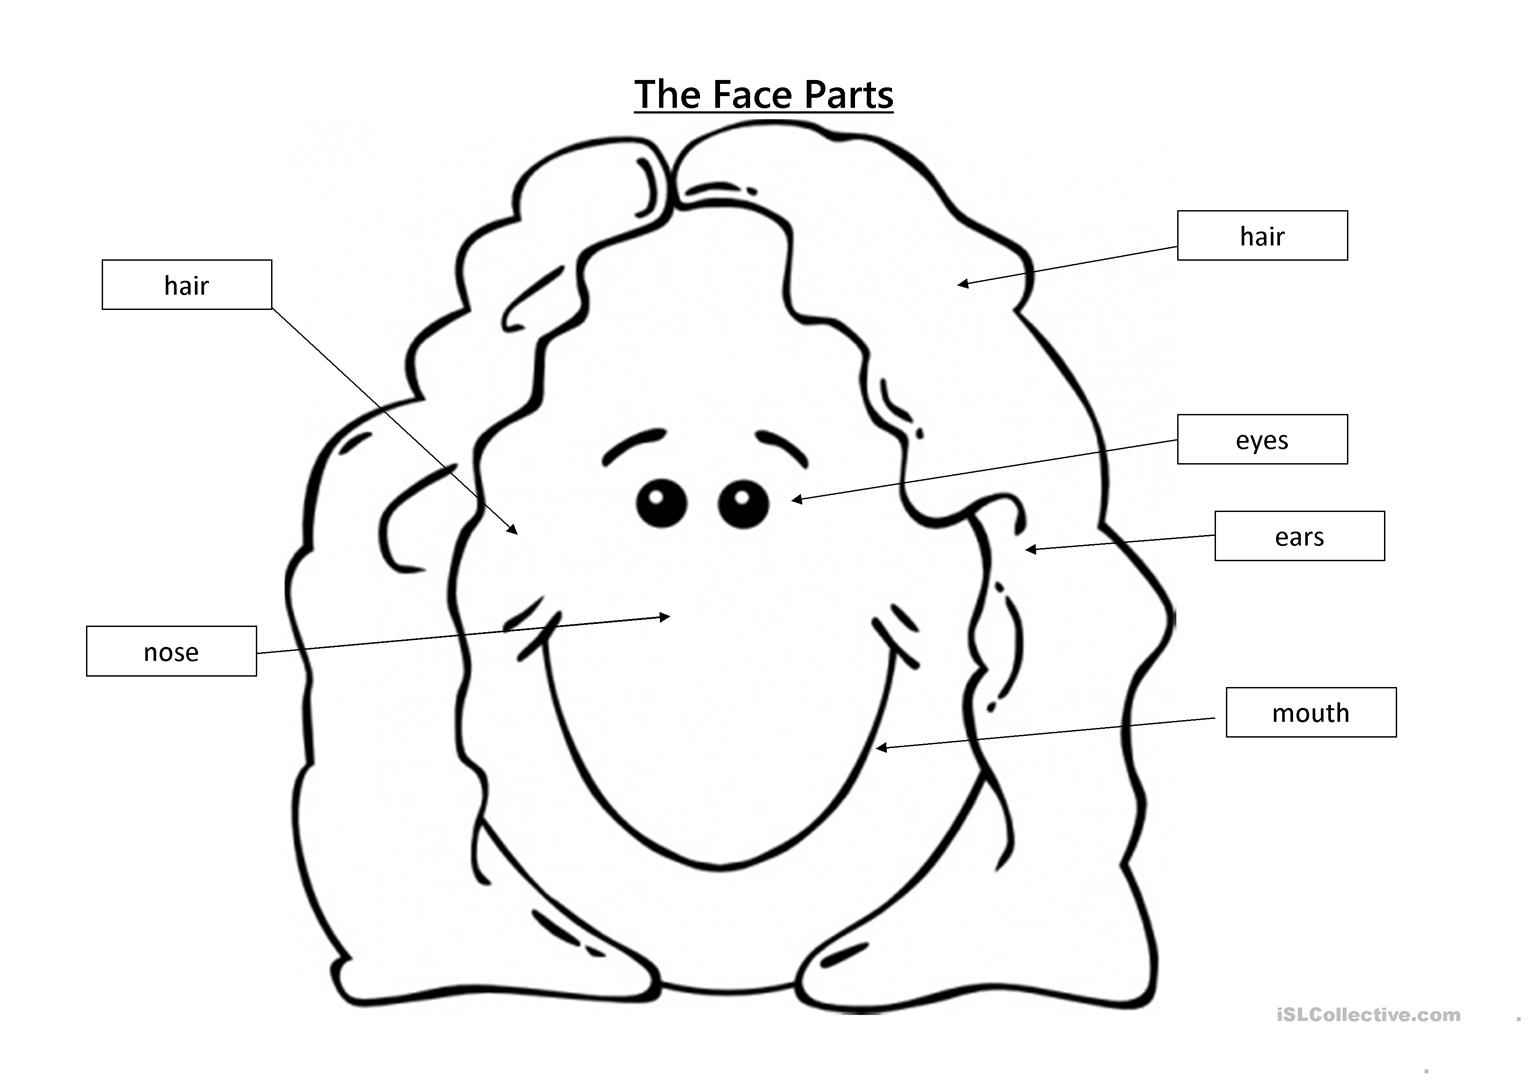 Parts Of The Face Worksheet Face Body Parts Worksheets Cool Preschool Worksheets For Kids